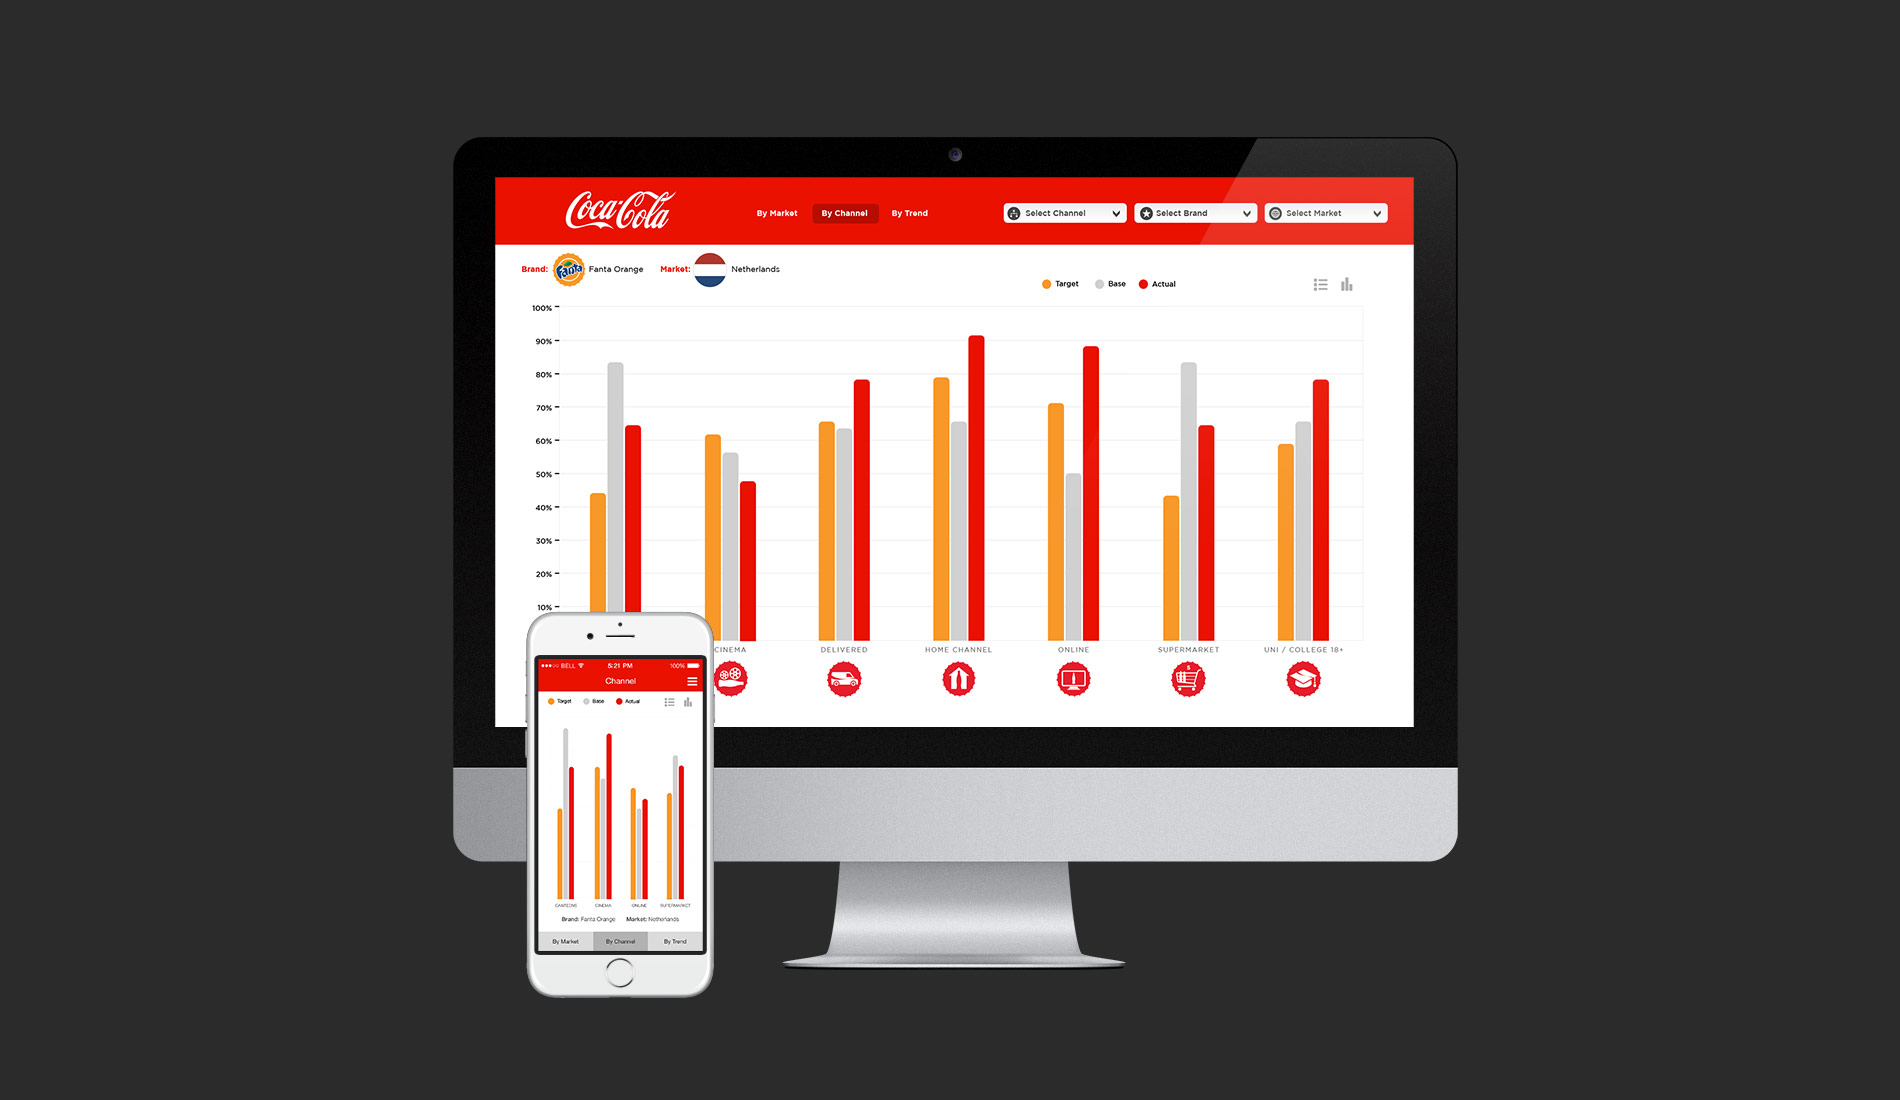 UI/UX design for an analytics app for a global beverage company